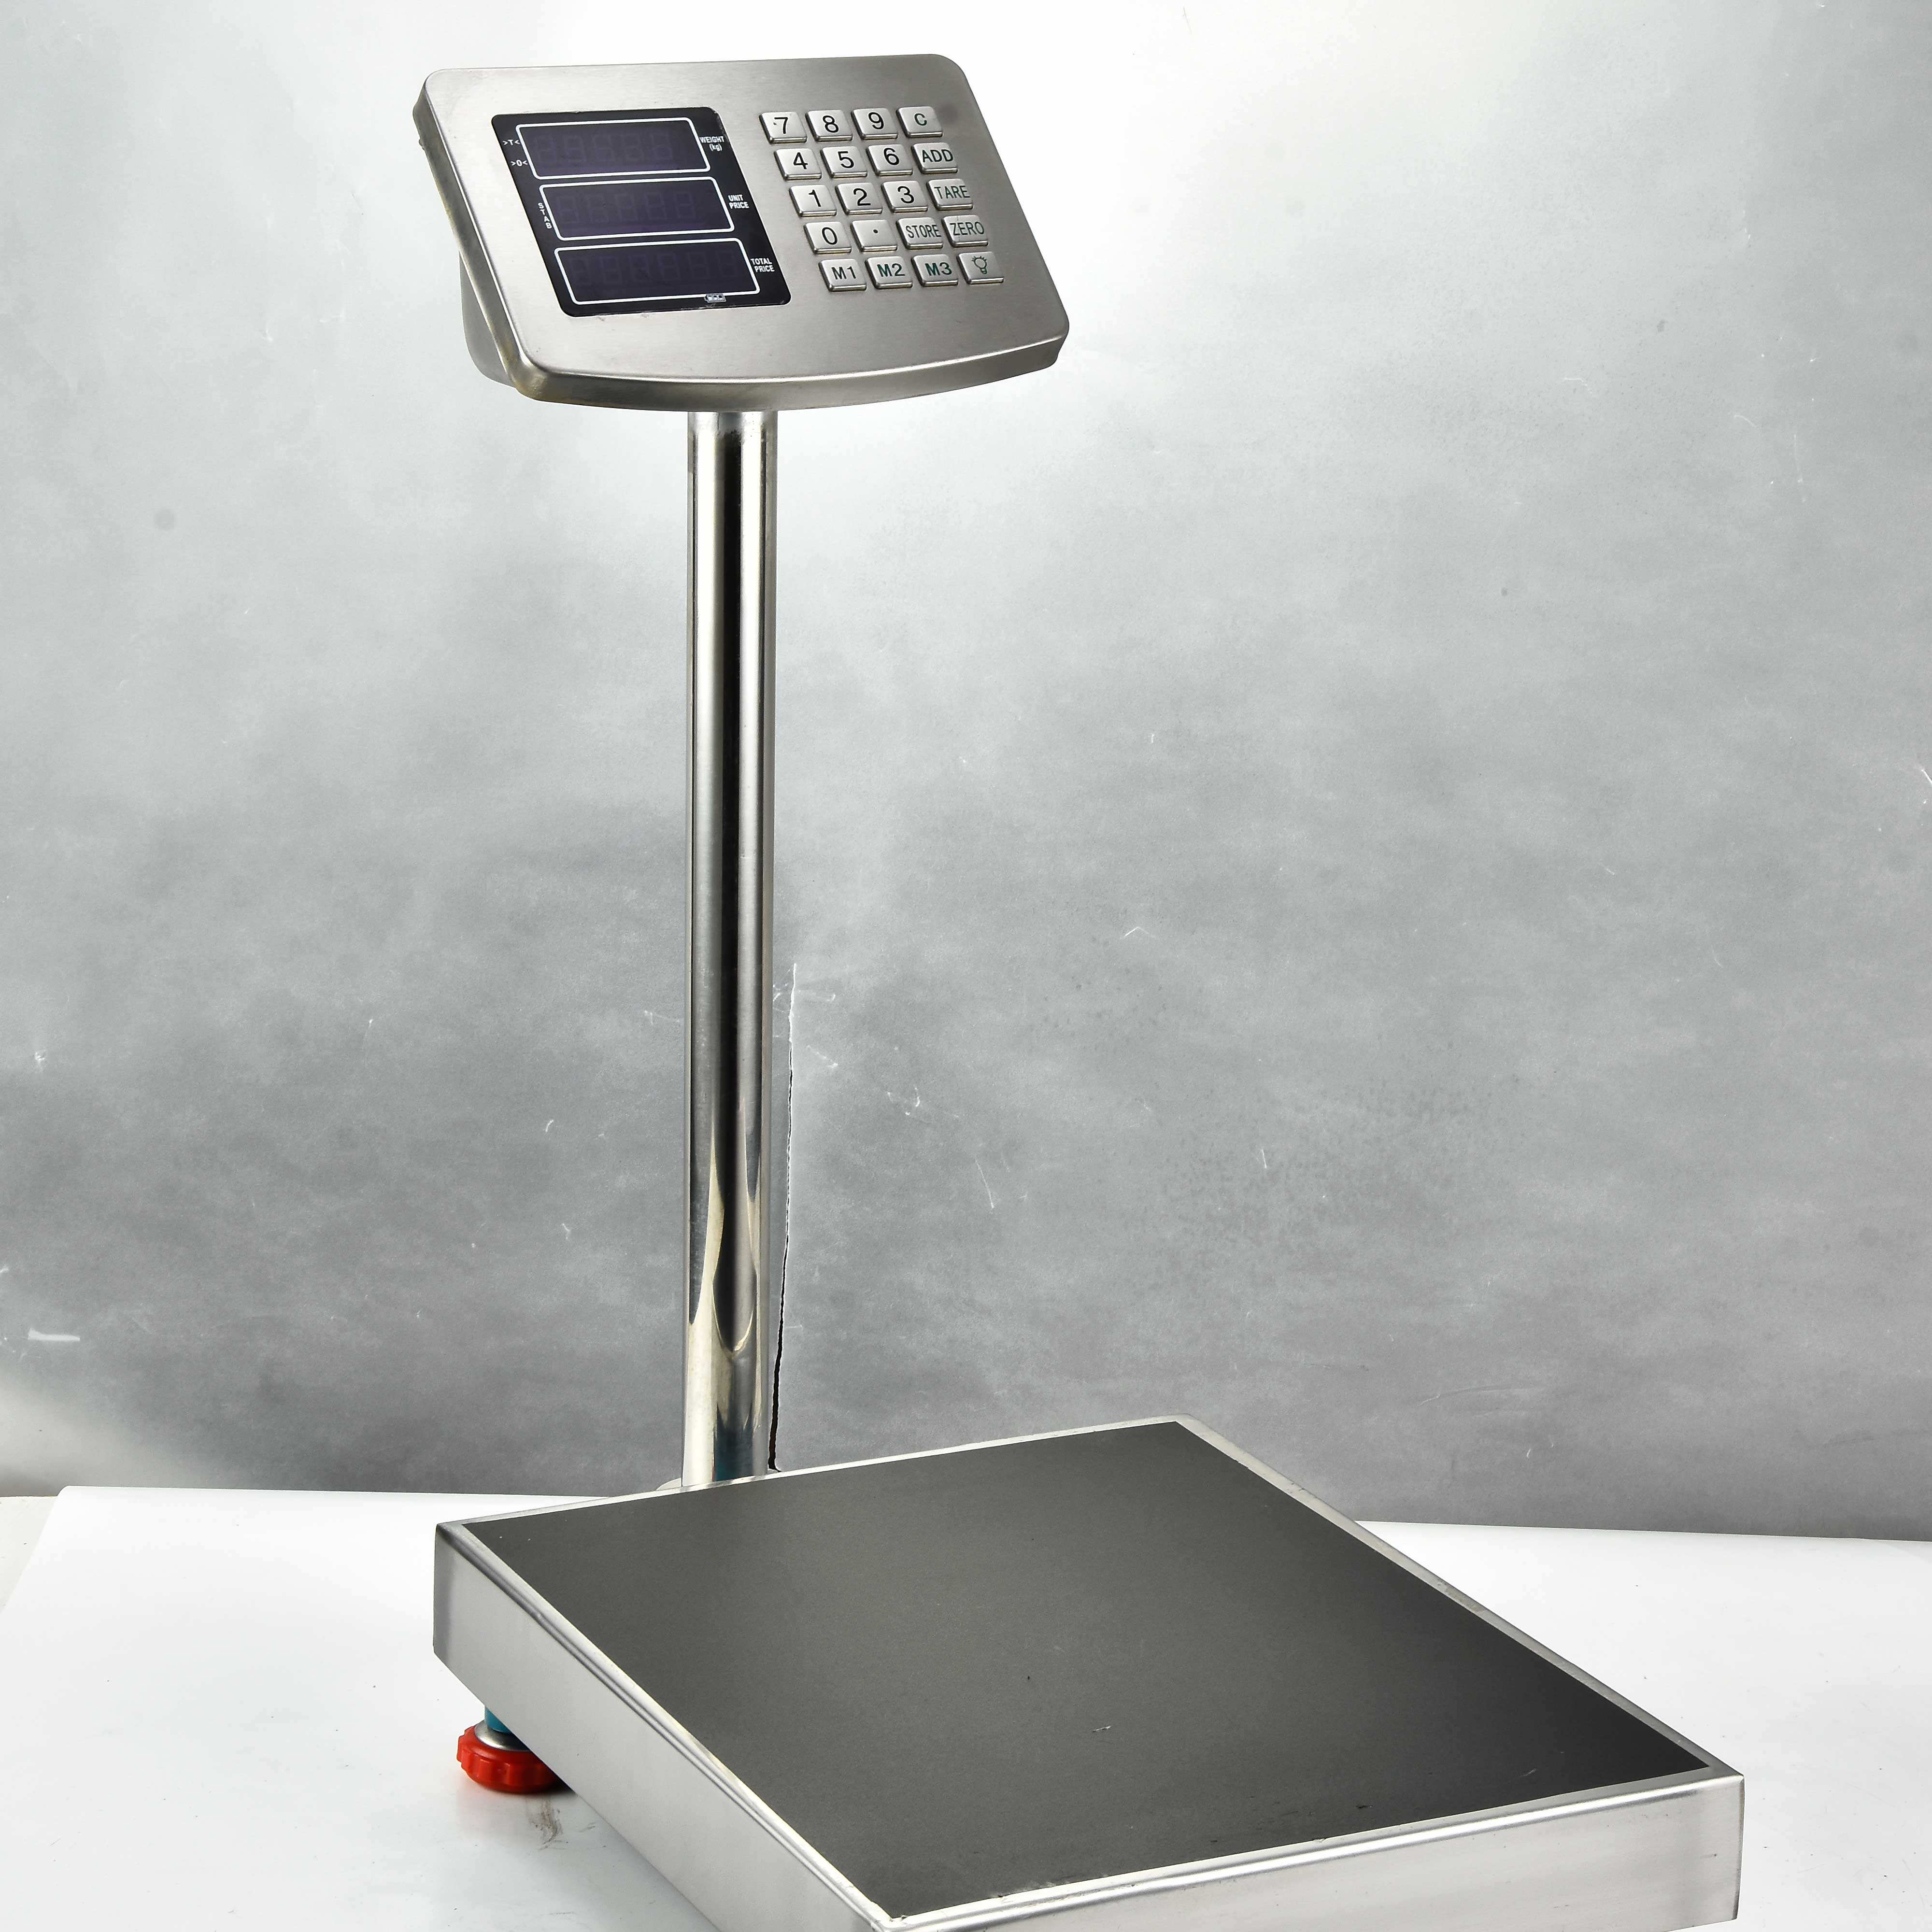 Export Performance Advanced Bench Electronic Platform Scale